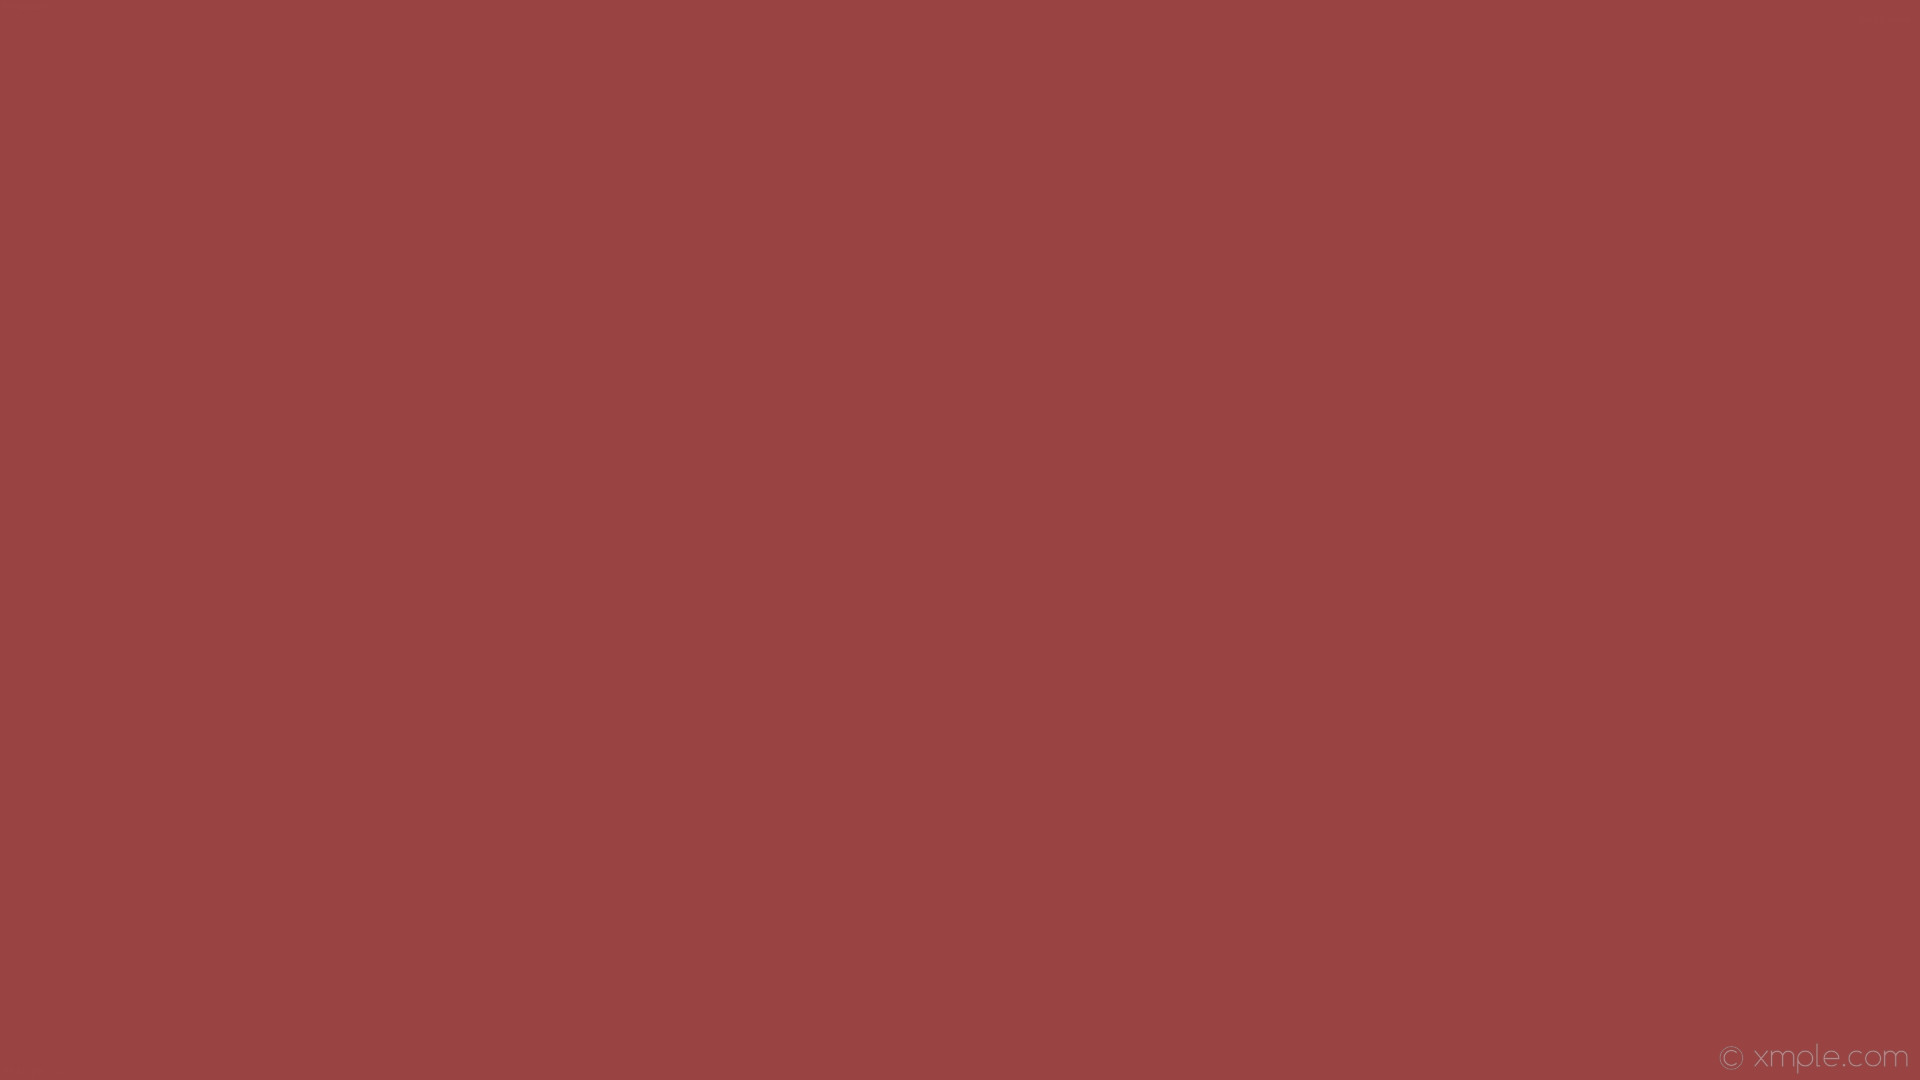 wallpaper plain single red one colour solid color #994443